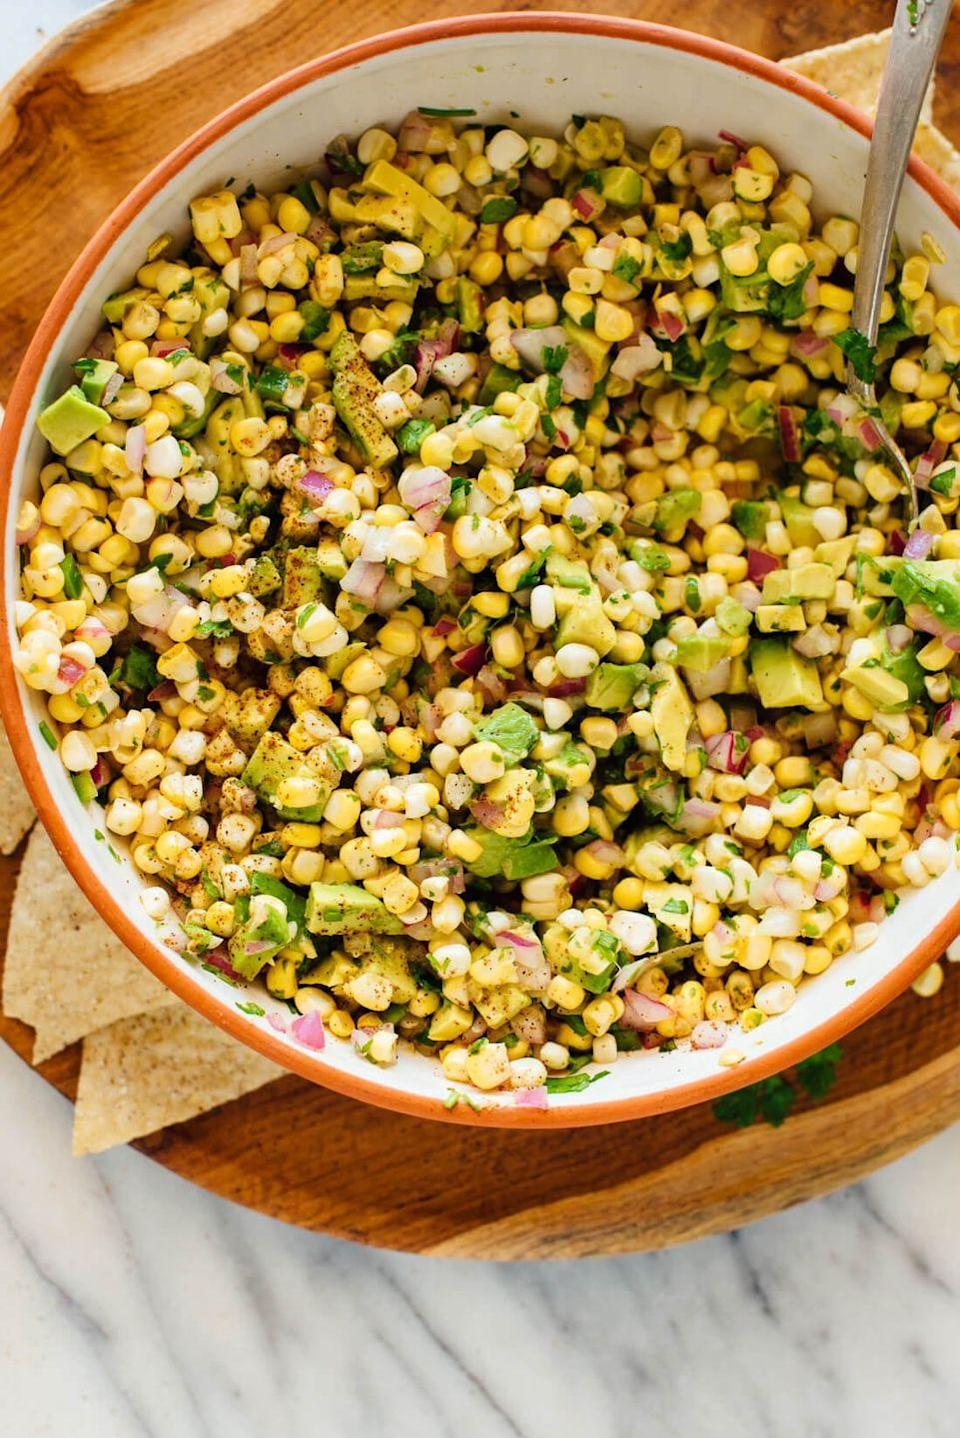 "<p>For a refreshing snack, make this easy fresh corn salsa. Pile it high on tortilla chips and enjoy.</p><p><strong>Get the recipe <a href=""https://cookieandkate.com/fresh-corn-salsa-recipe/"" rel=""nofollow noopener"" target=""_blank"" data-ylk=""slk:Cookie + Kate"" class=""link rapid-noclick-resp"">Cookie + Kate</a>.</strong></p><p><strong><a class=""link rapid-noclick-resp"" href=""https://go.redirectingat.com?id=74968X1596630&url=https%3A%2F%2Fwww.walmart.com%2Fsearch%2F%3Fquery%3Dmixing%2Bbowls&sref=https%3A%2F%2Fwww.thepioneerwoman.com%2Ffood-cooking%2Fmeals-menus%2Fg35993911%2Fbest-corn-recipes%2F"" rel=""nofollow noopener"" target=""_blank"" data-ylk=""slk:SHOP MIXING BOWLS"">SHOP MIXING BOWLS</a><br></strong></p>"